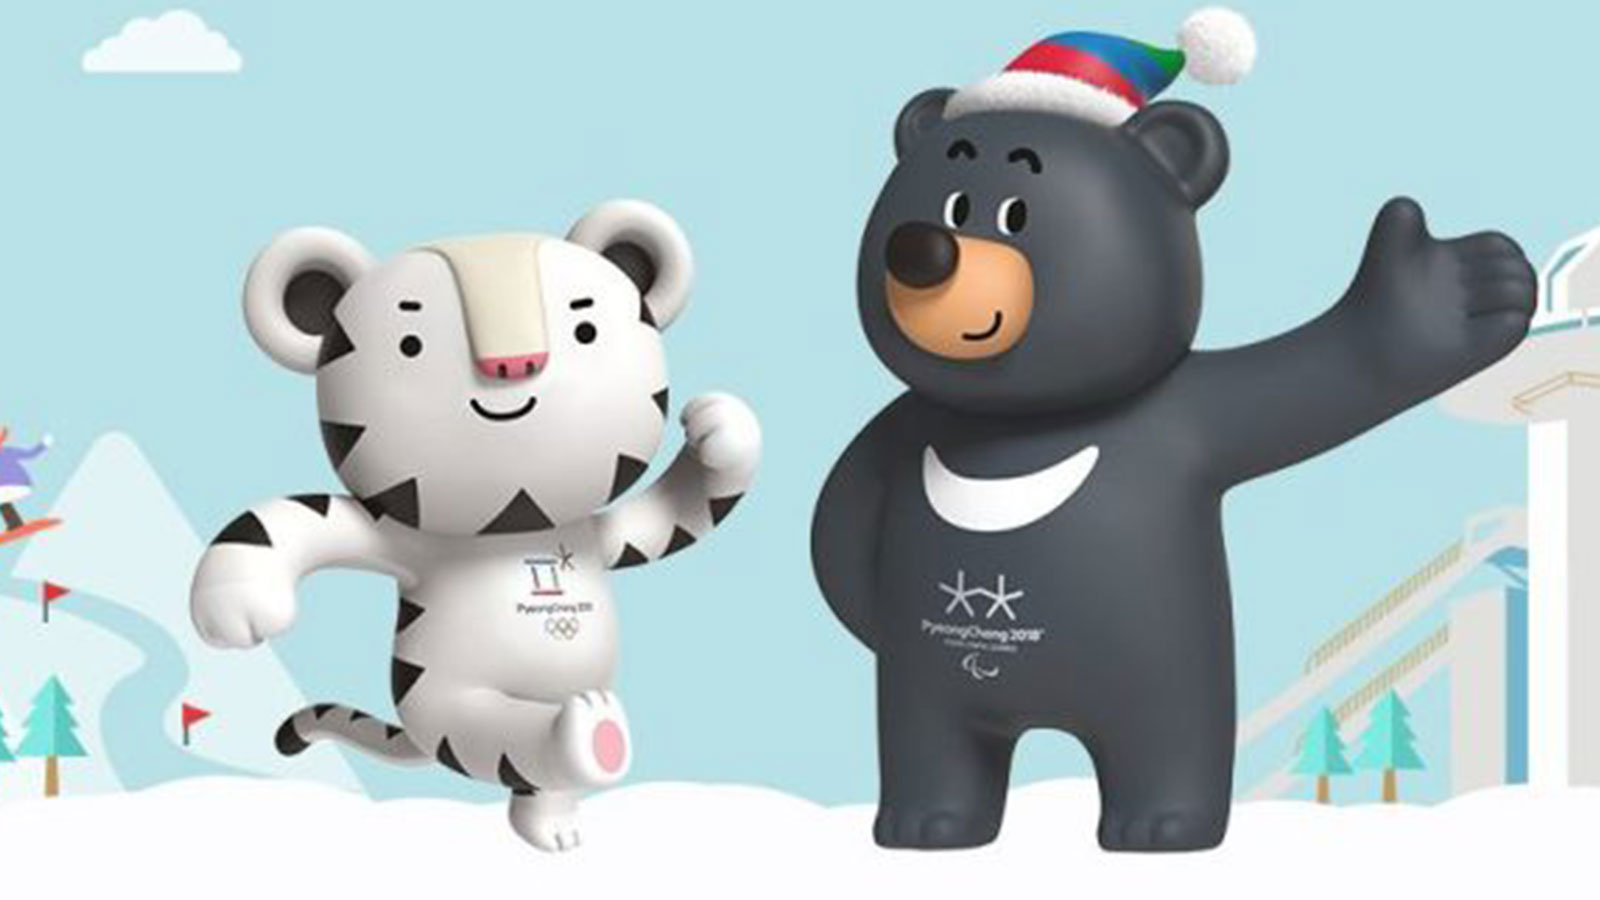 2018 olympic mascot snowboard clipart clip freeuse download All About Soohorang and Bandabi, the PyeongChang 2018 Winter Olympic ... clip freeuse download